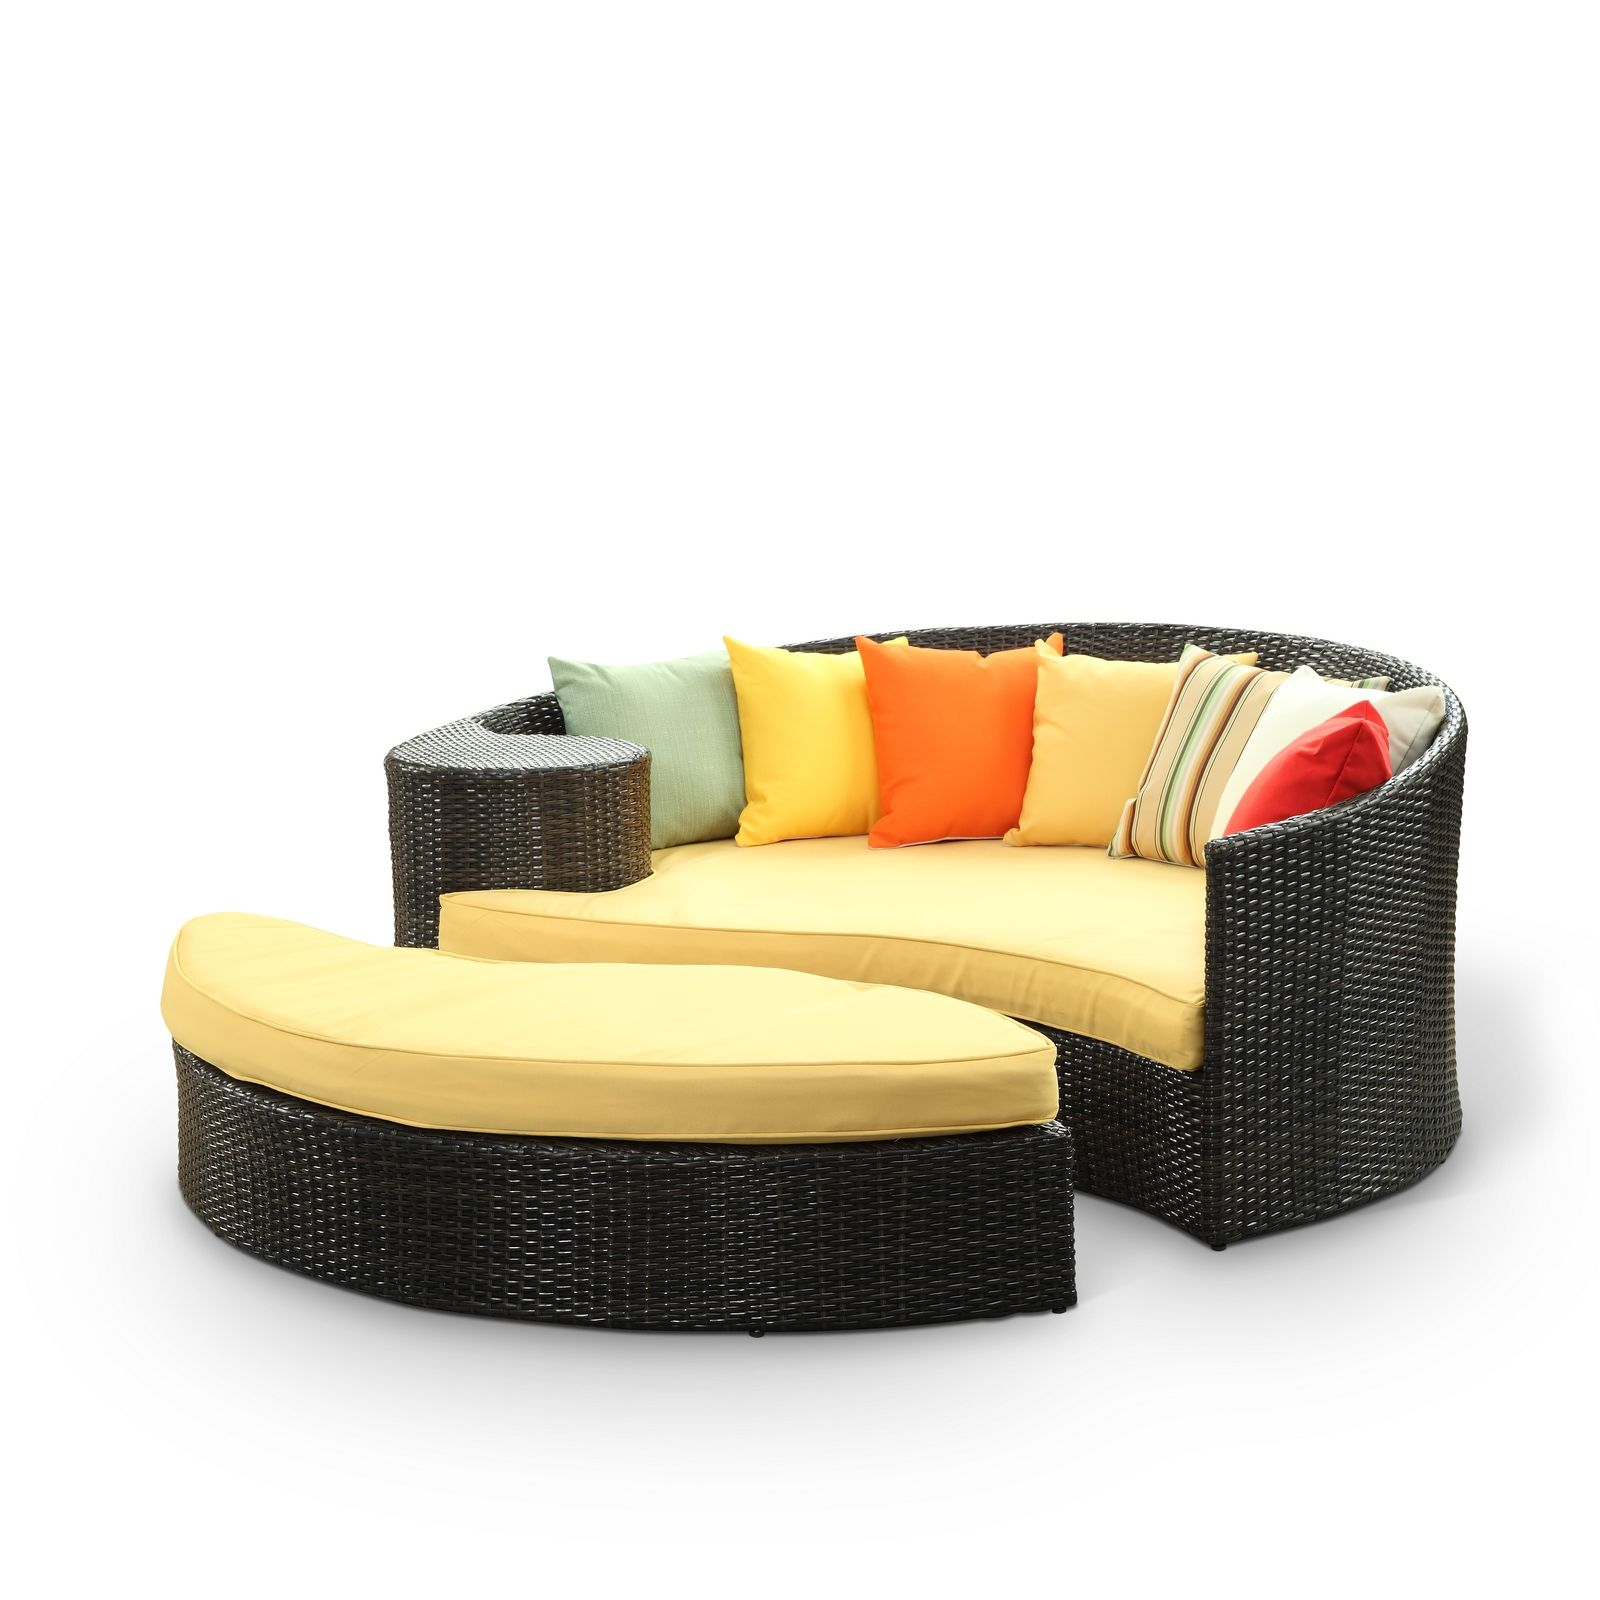 Taiji Outdoor Wicker Patio Daybed With Ottoman In Brown Orange Cushions Harmonize Inverse Elements This Radically Pleasing Set